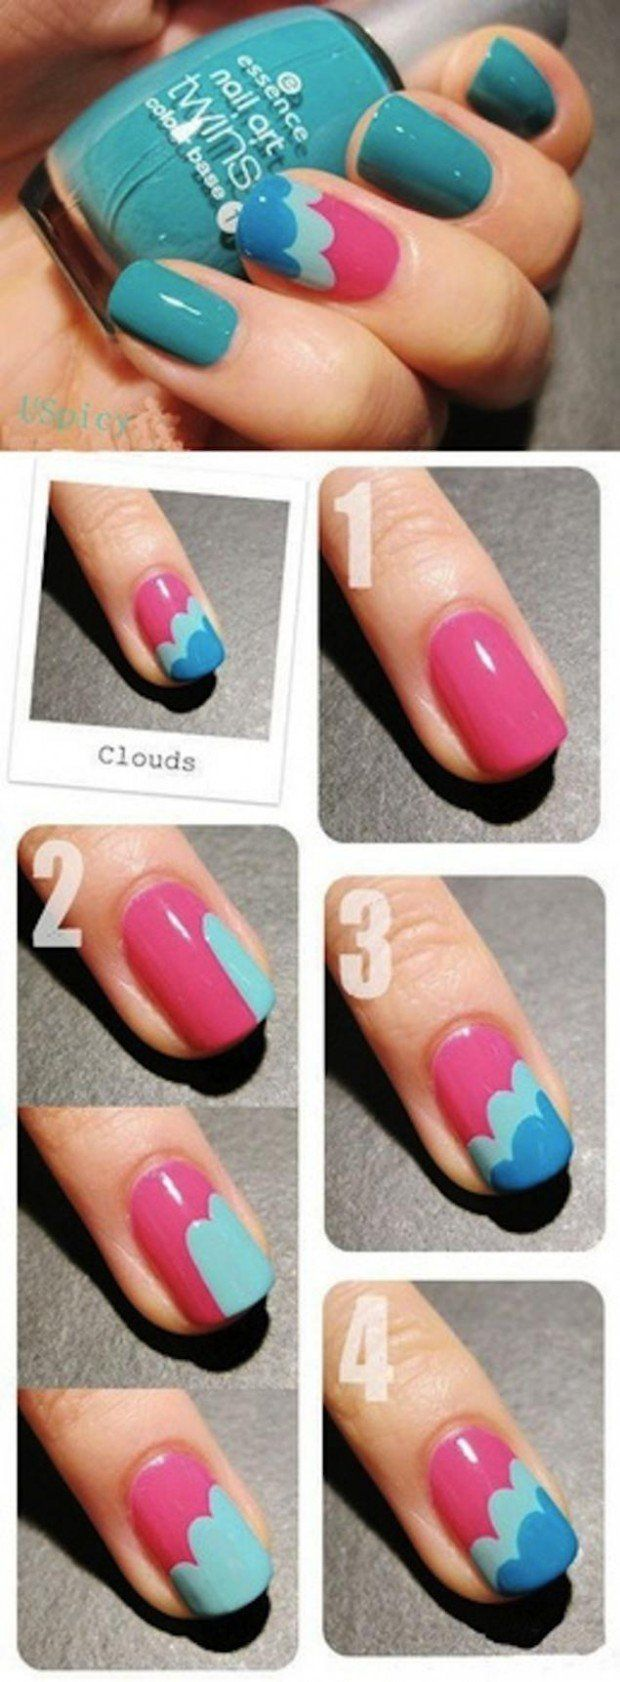 Awesome nails awesome nails pinterest art tutorials awesome nails prinsesfo Choice Image